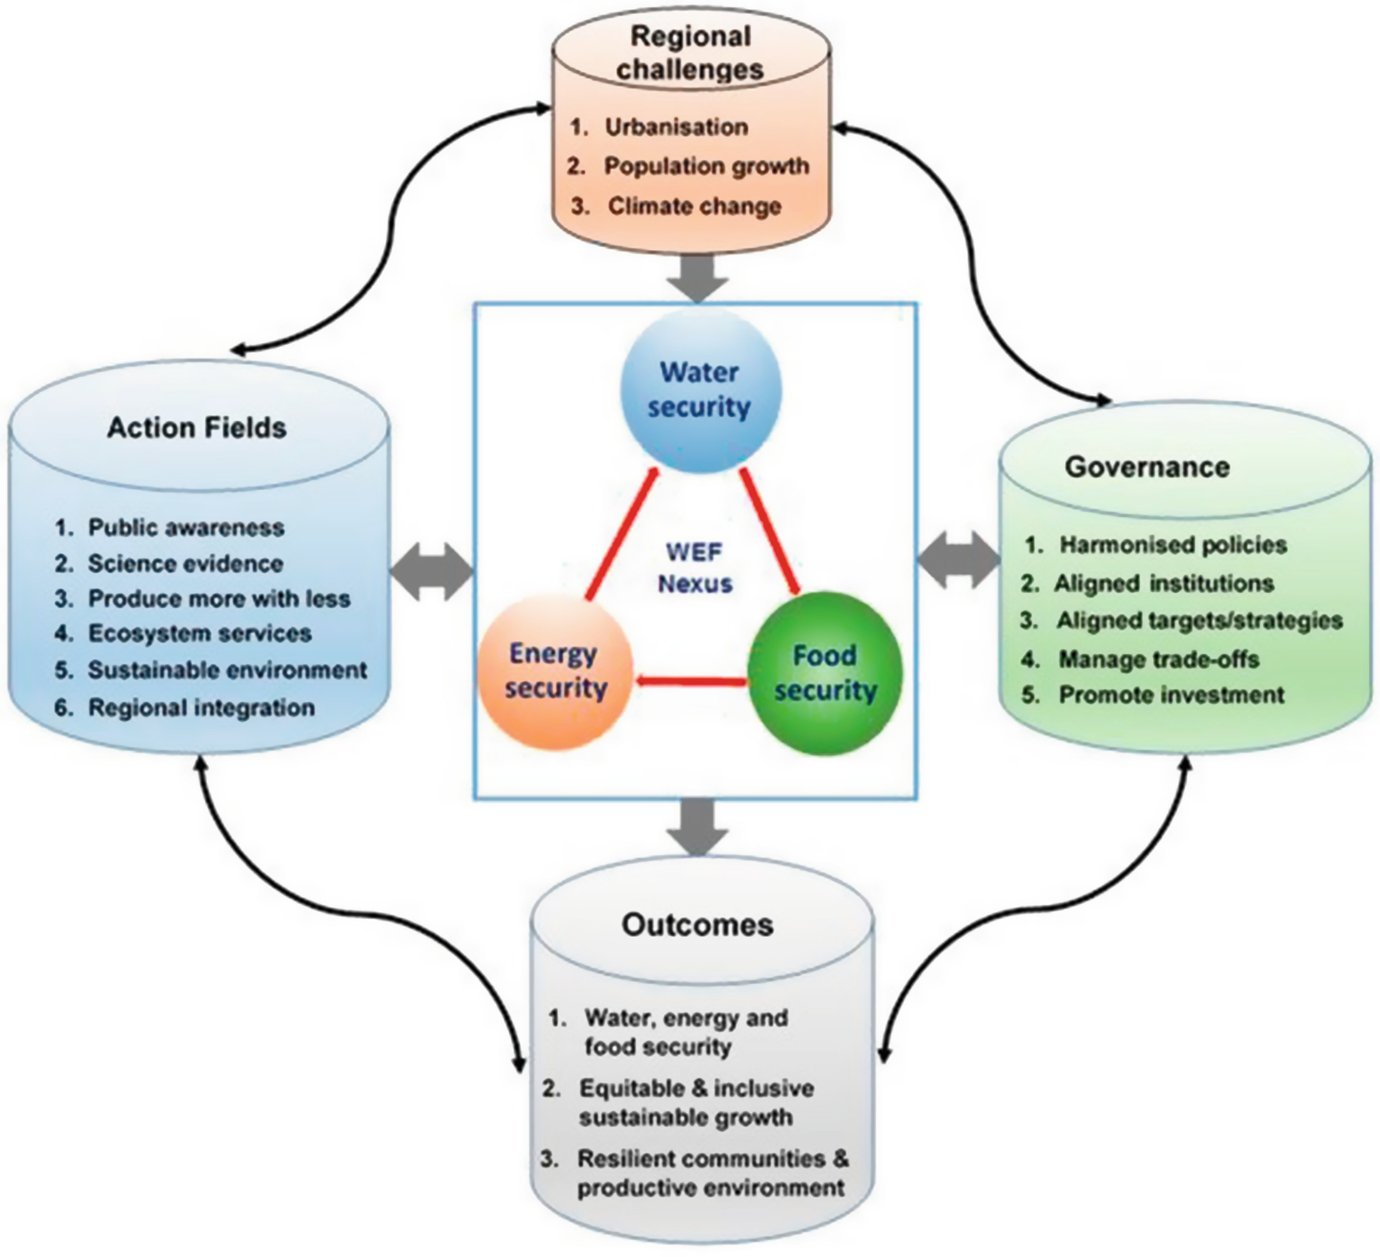 Conceptual framework of the regional water-energy-food nexus action plan. © The authors